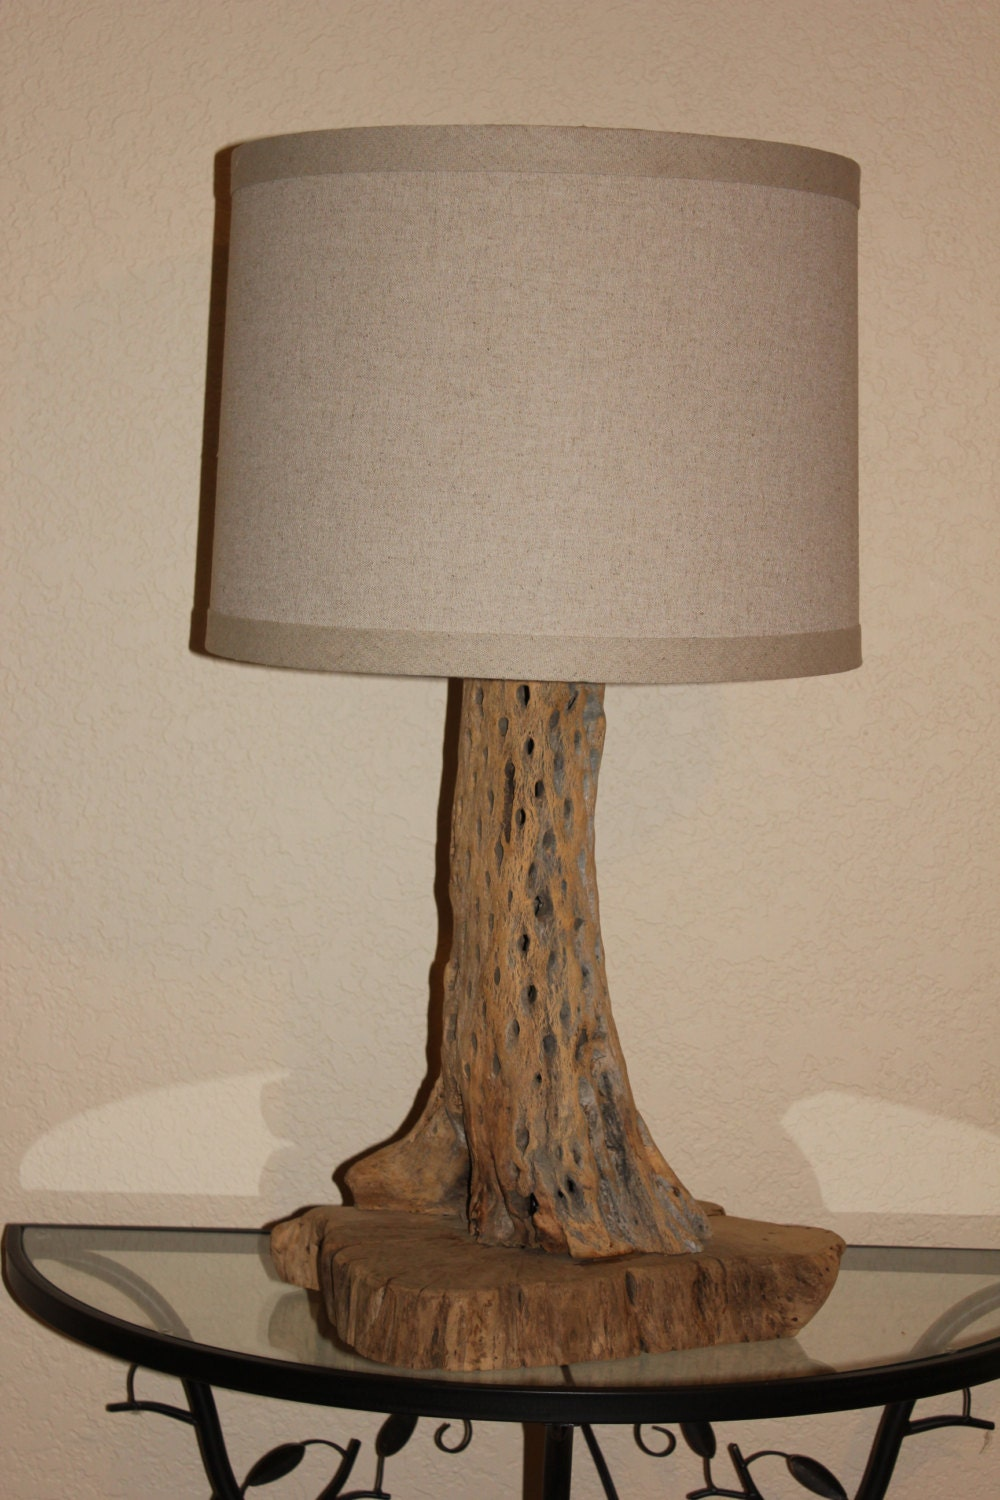 Cholla Cactus Table Lamp CHCTL 002 By DriftwoodandCactus